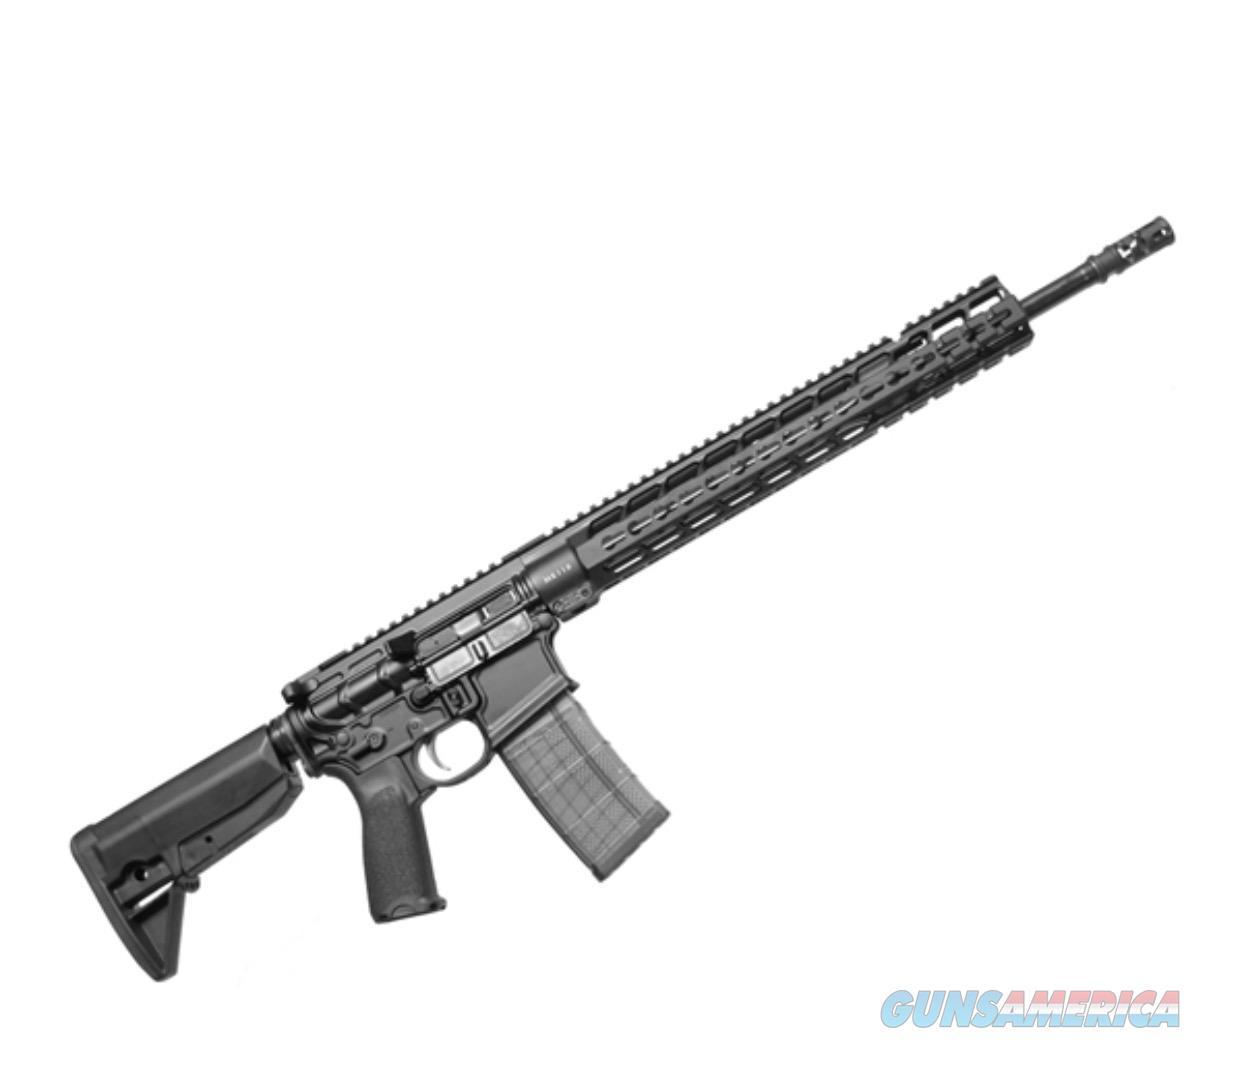 PWS MK118 Mod 2   Guns > Rifles > AR-15 Rifles - Small Manufacturers > Complete Rifle